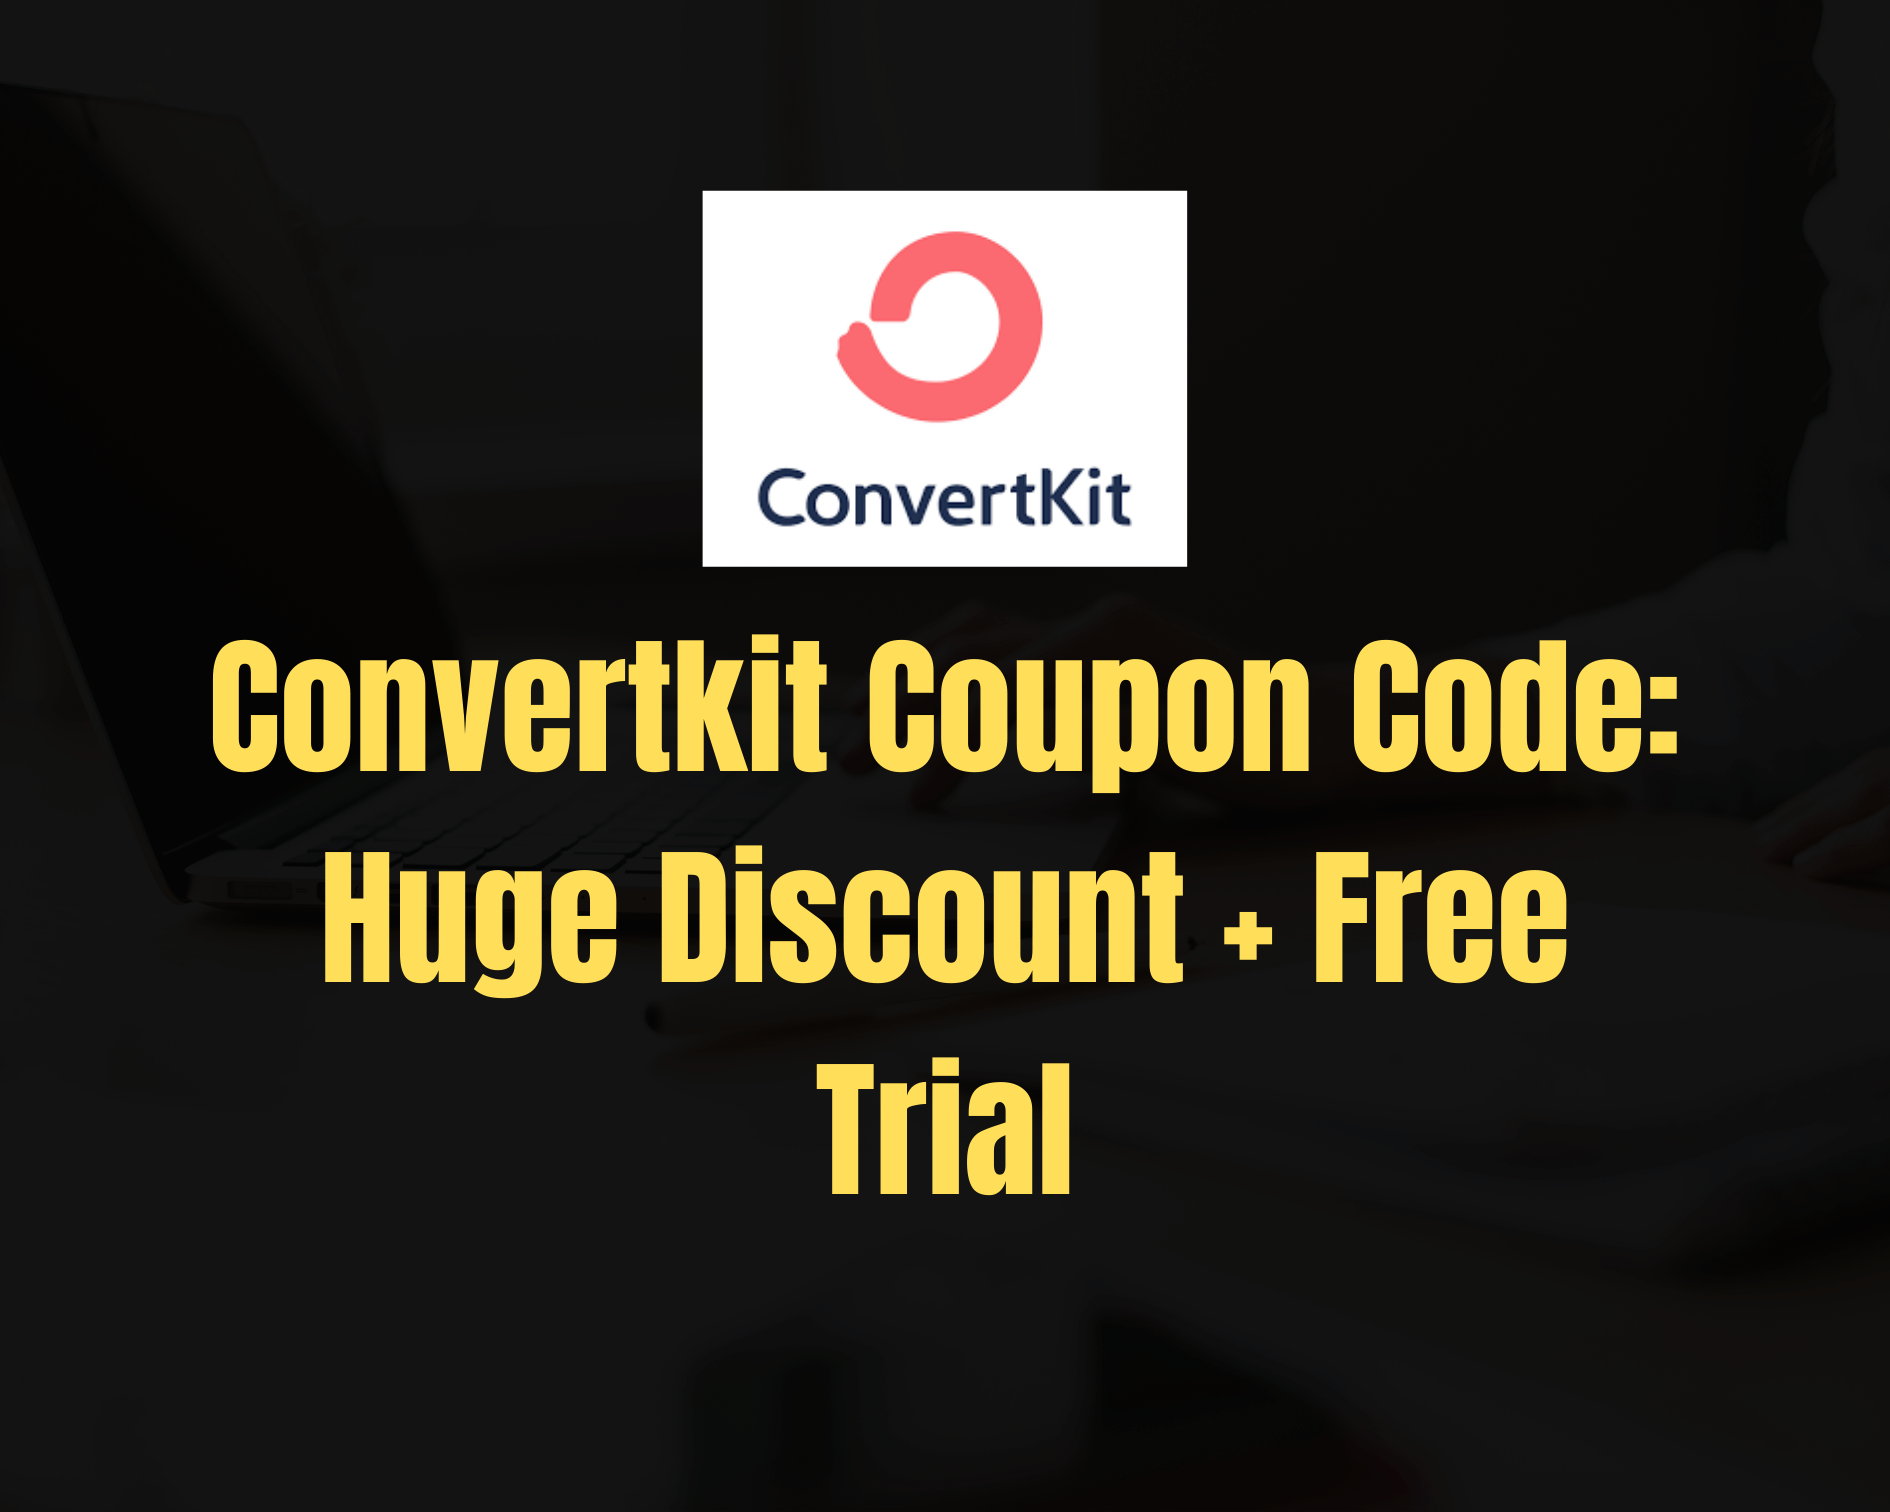 Convertkit Coupon Code: 17% OFF + 14 Days Free Trial